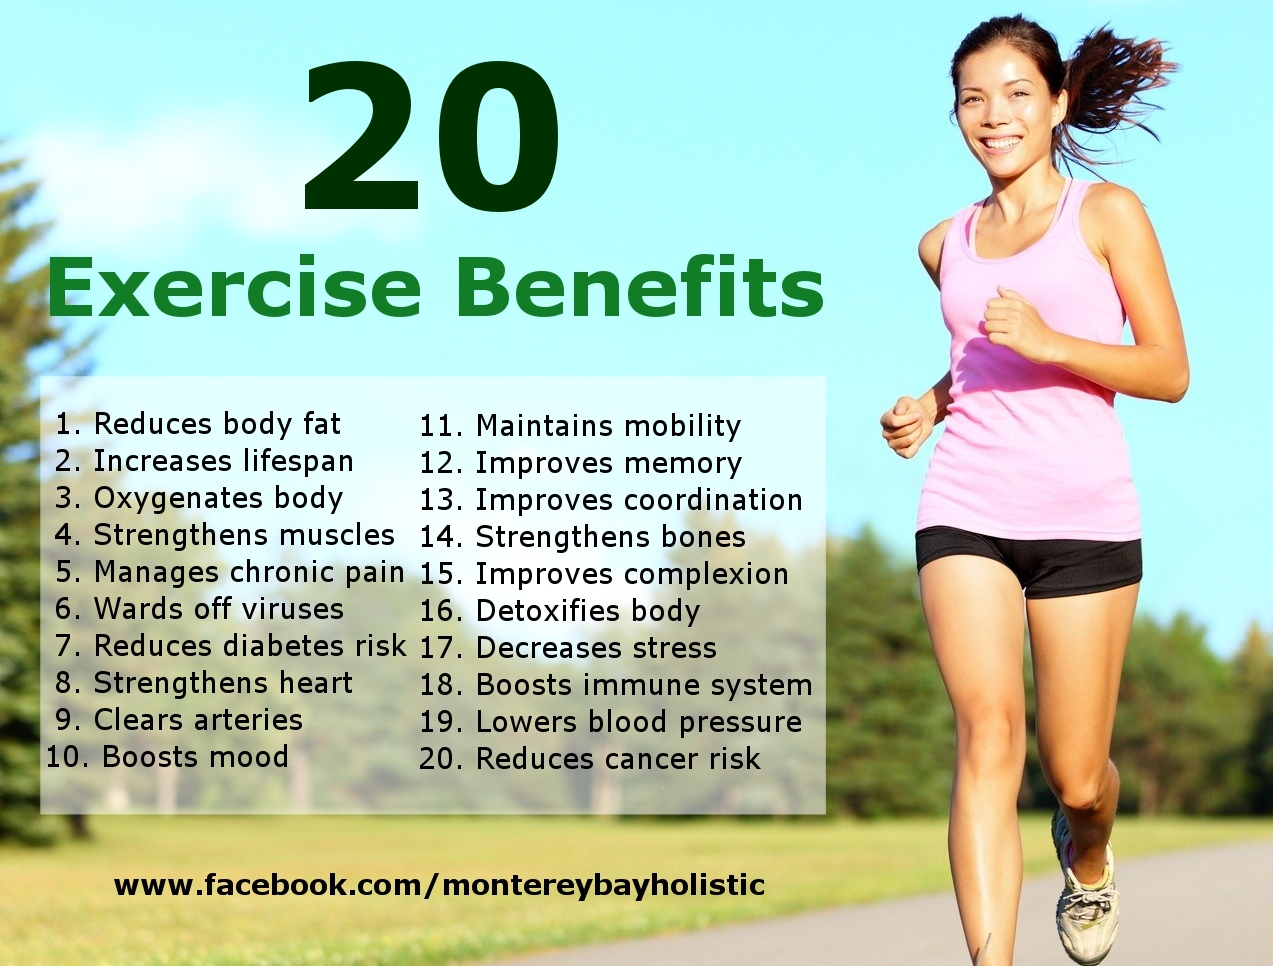 http://montereybayholistic.files.wordpress.com/2012/12/20exercisebenefits.jpg